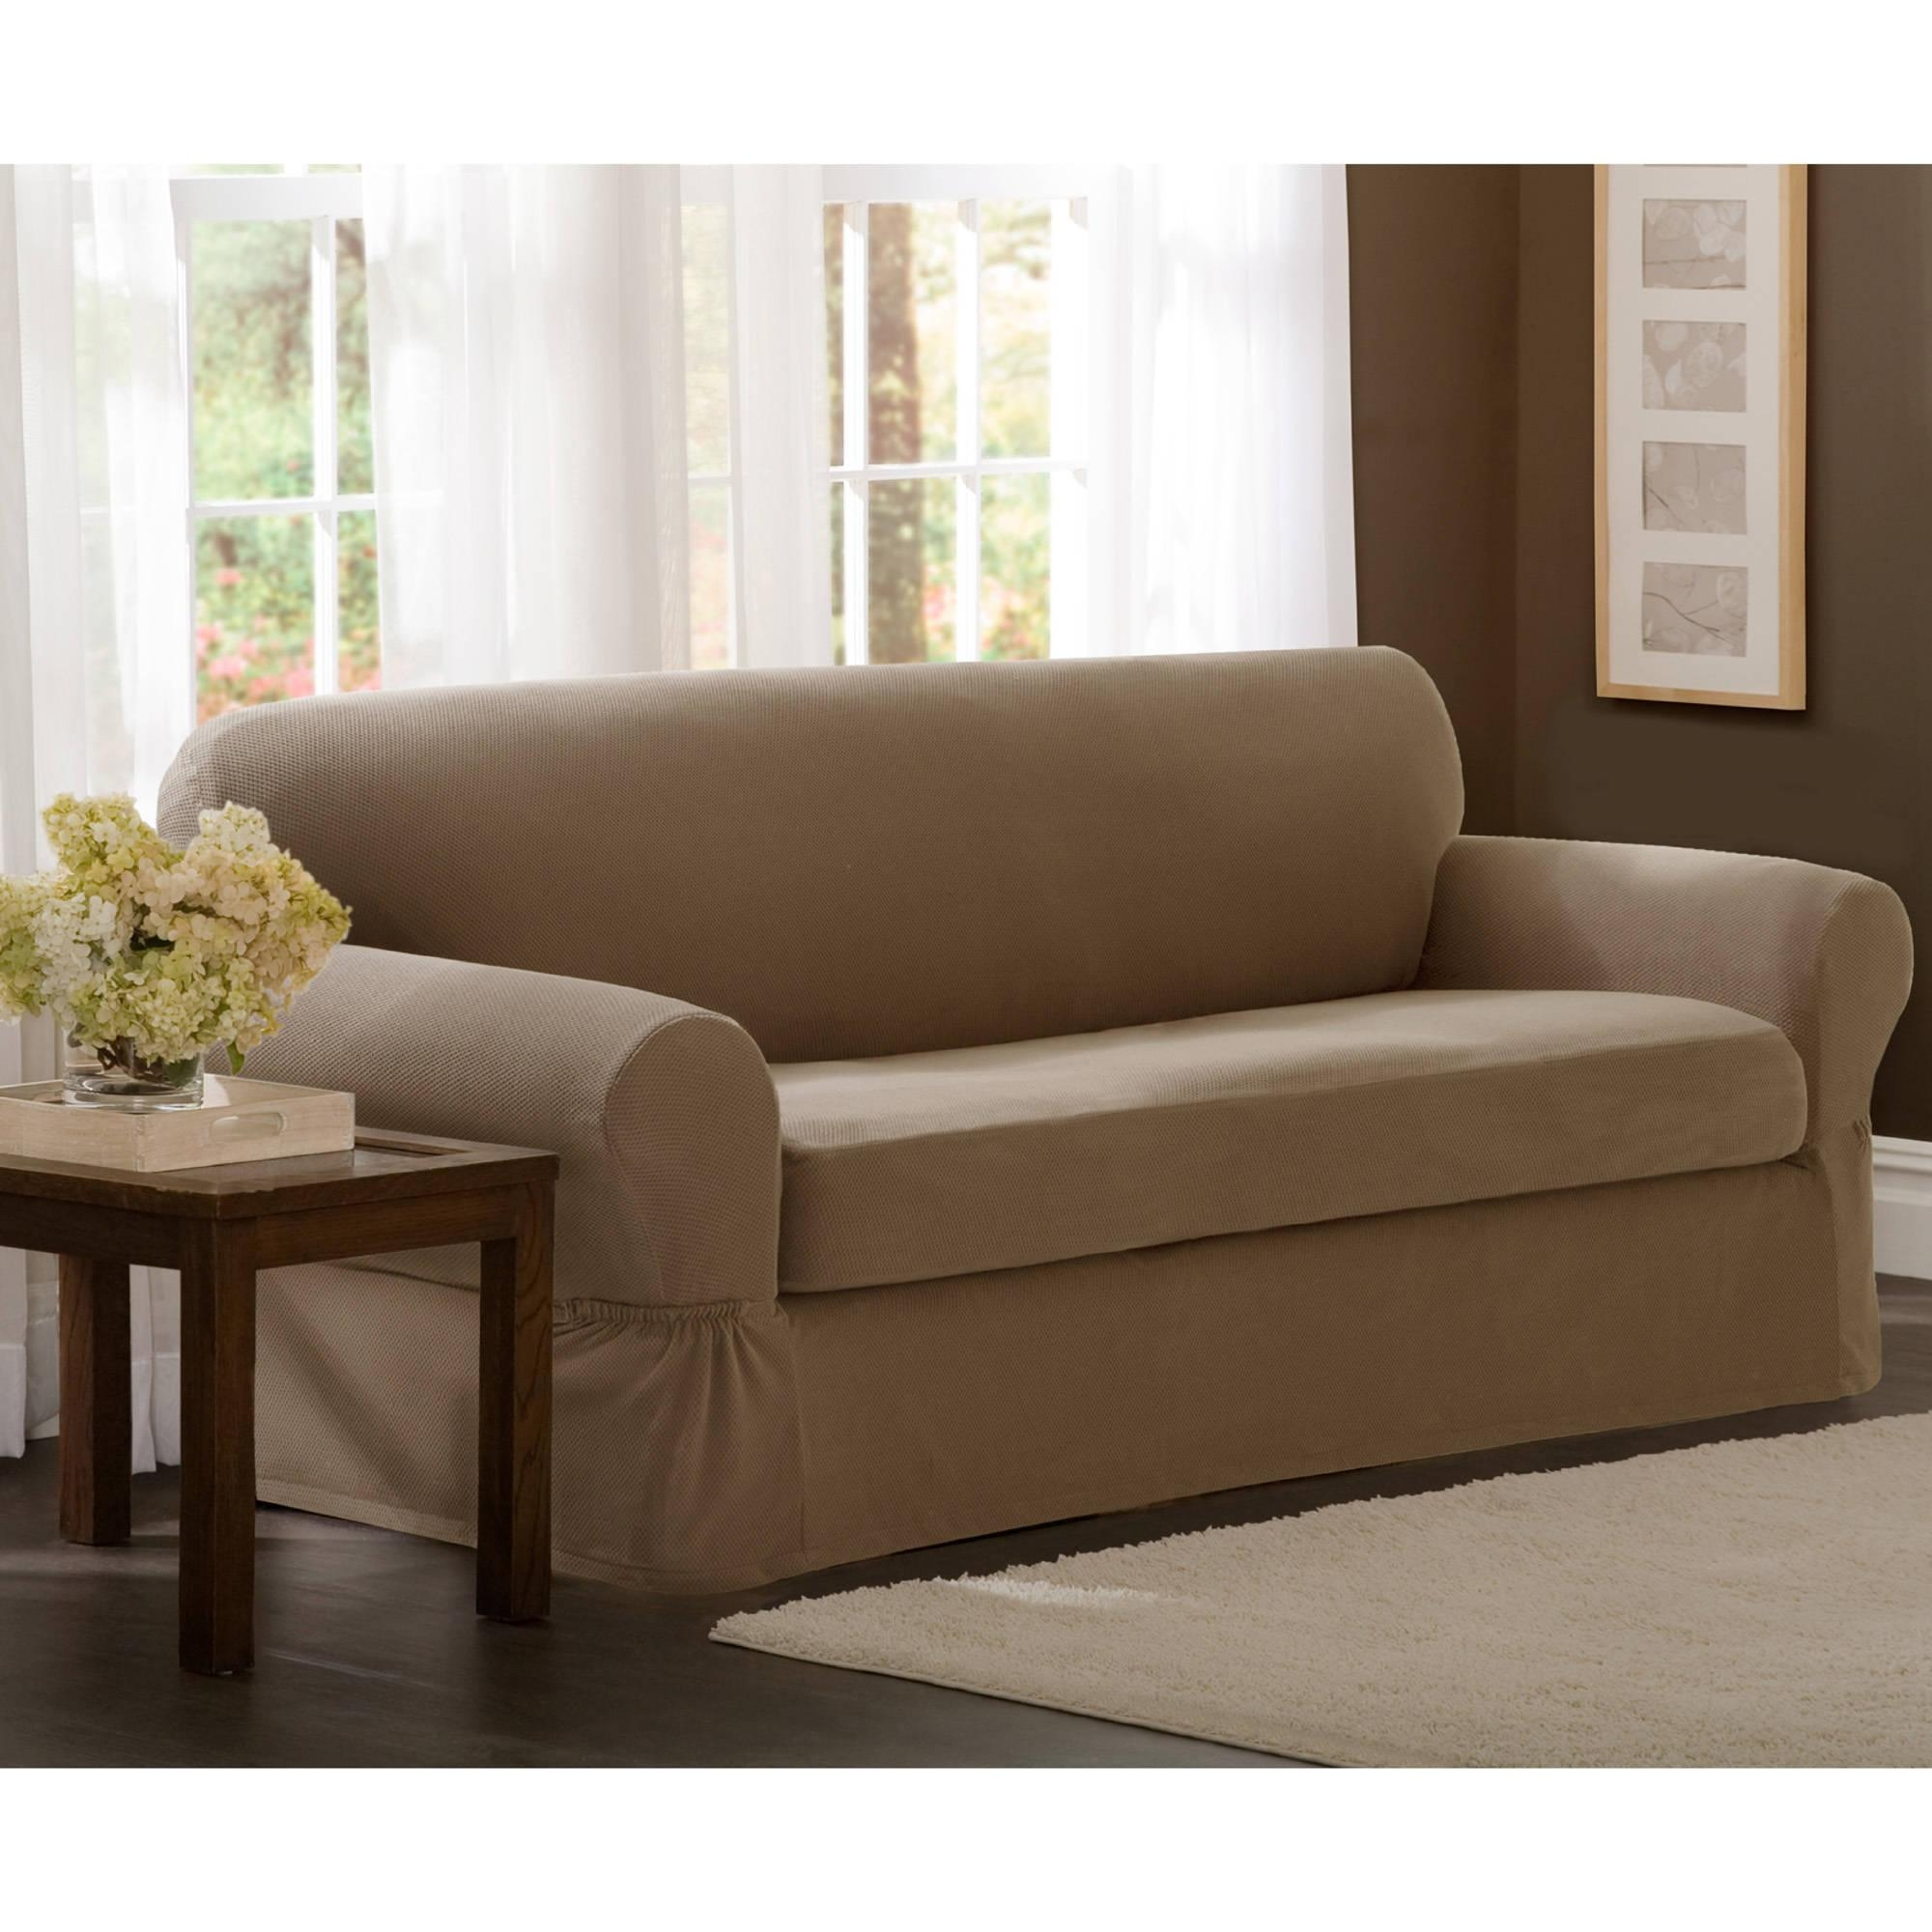 Maytex Stretch 2 Piece Sofa Slipcover – Walmart Intended For 3 Piece Slipcover Sets (Image 14 of 20)